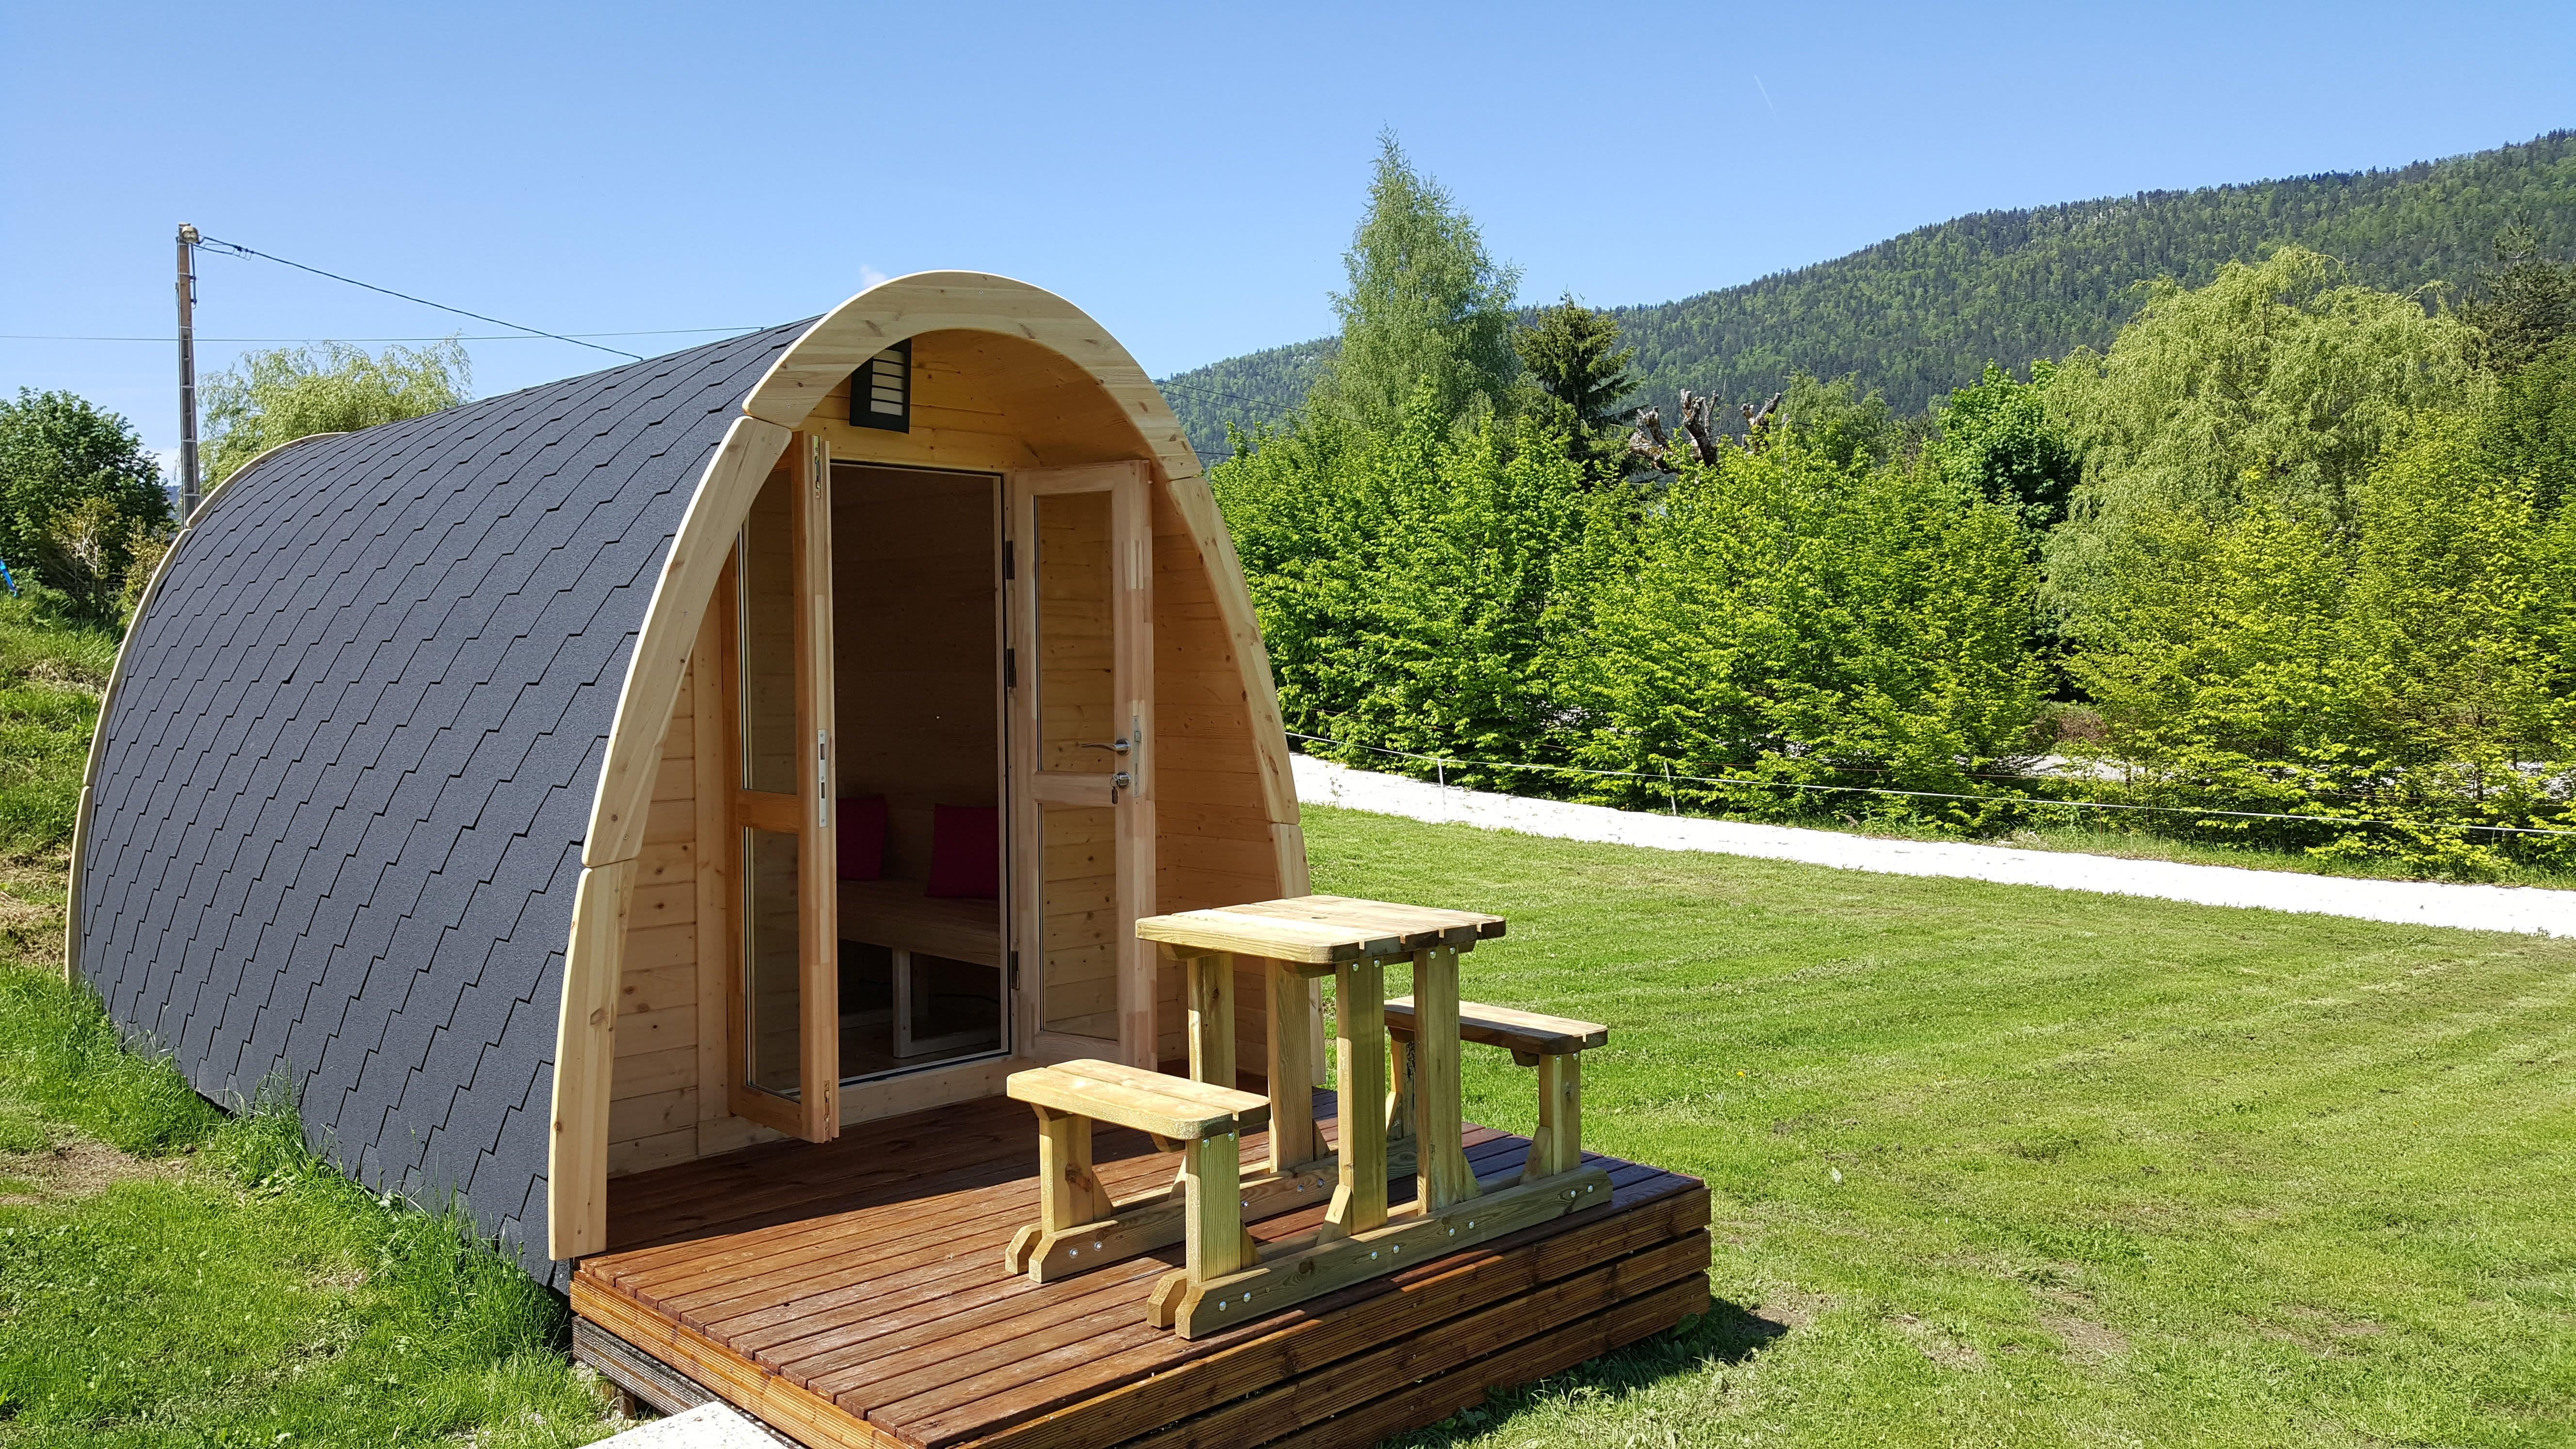 Accommodation - Wooden Cabin 100 % Nature Terrace - Camping Le Vercors